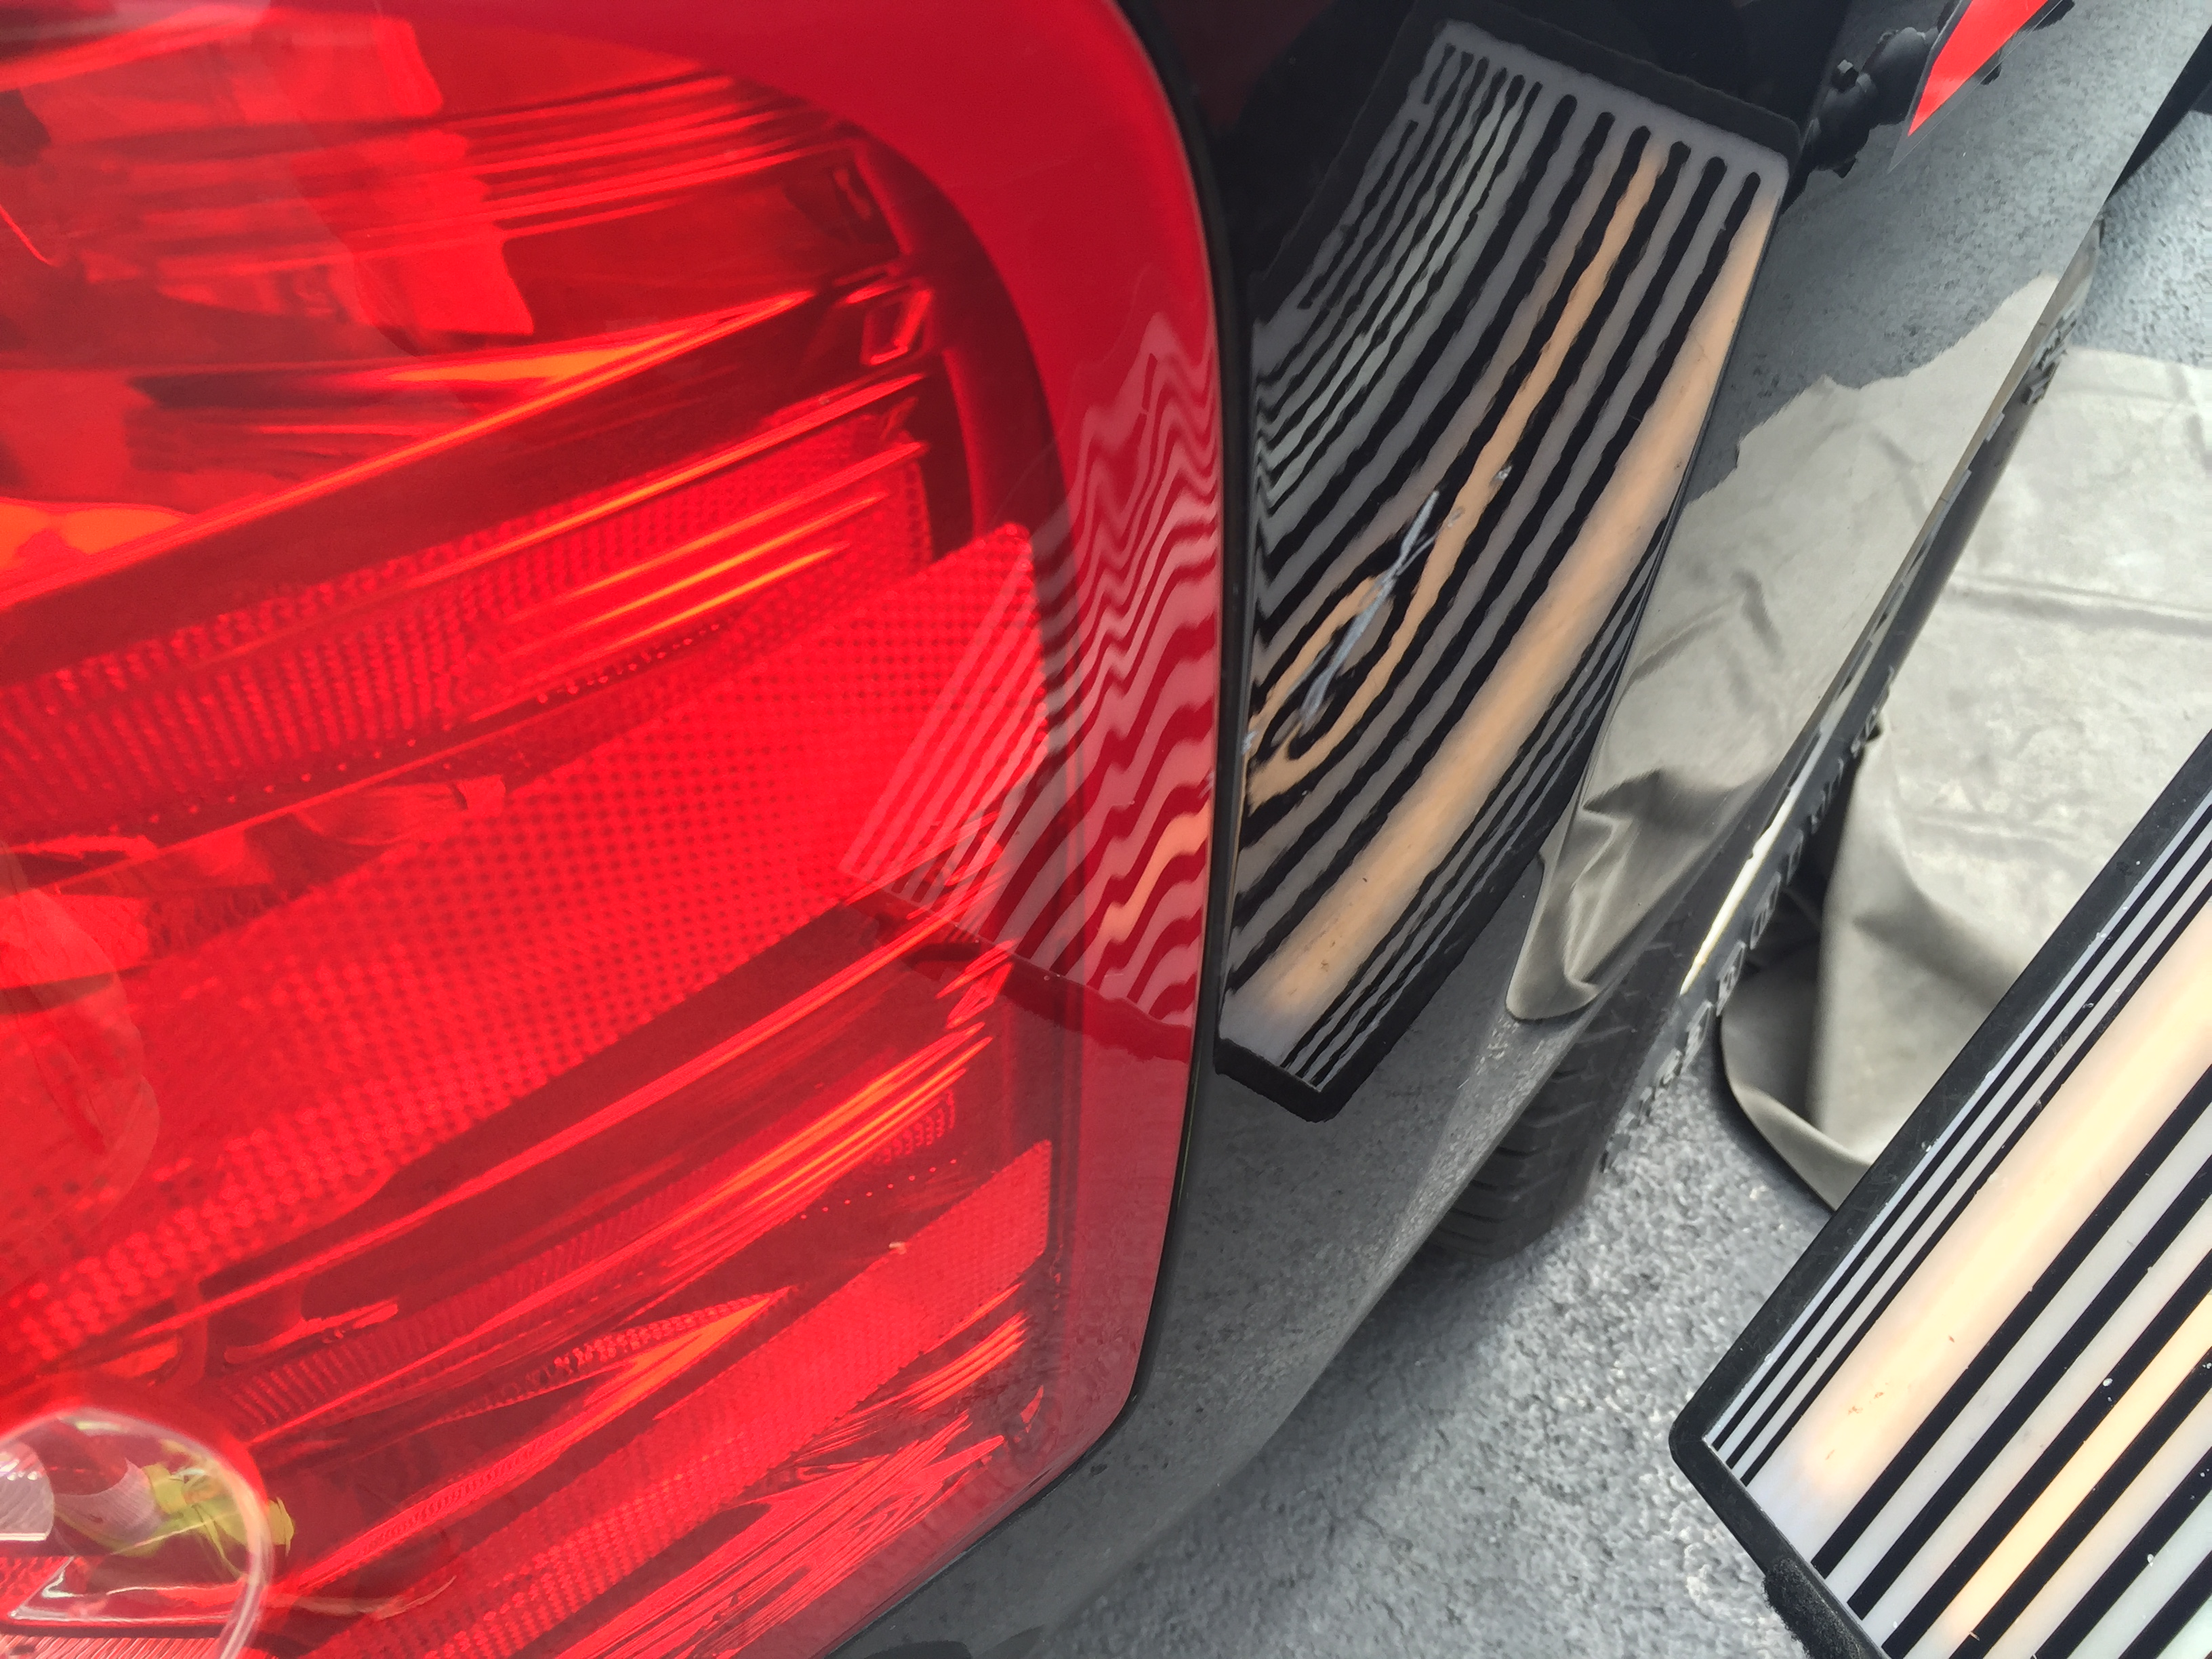 2011 Chevy Silverado Dent Repair, Michael Bocek out of Springfield, IL with http://217dent.com 217 dent